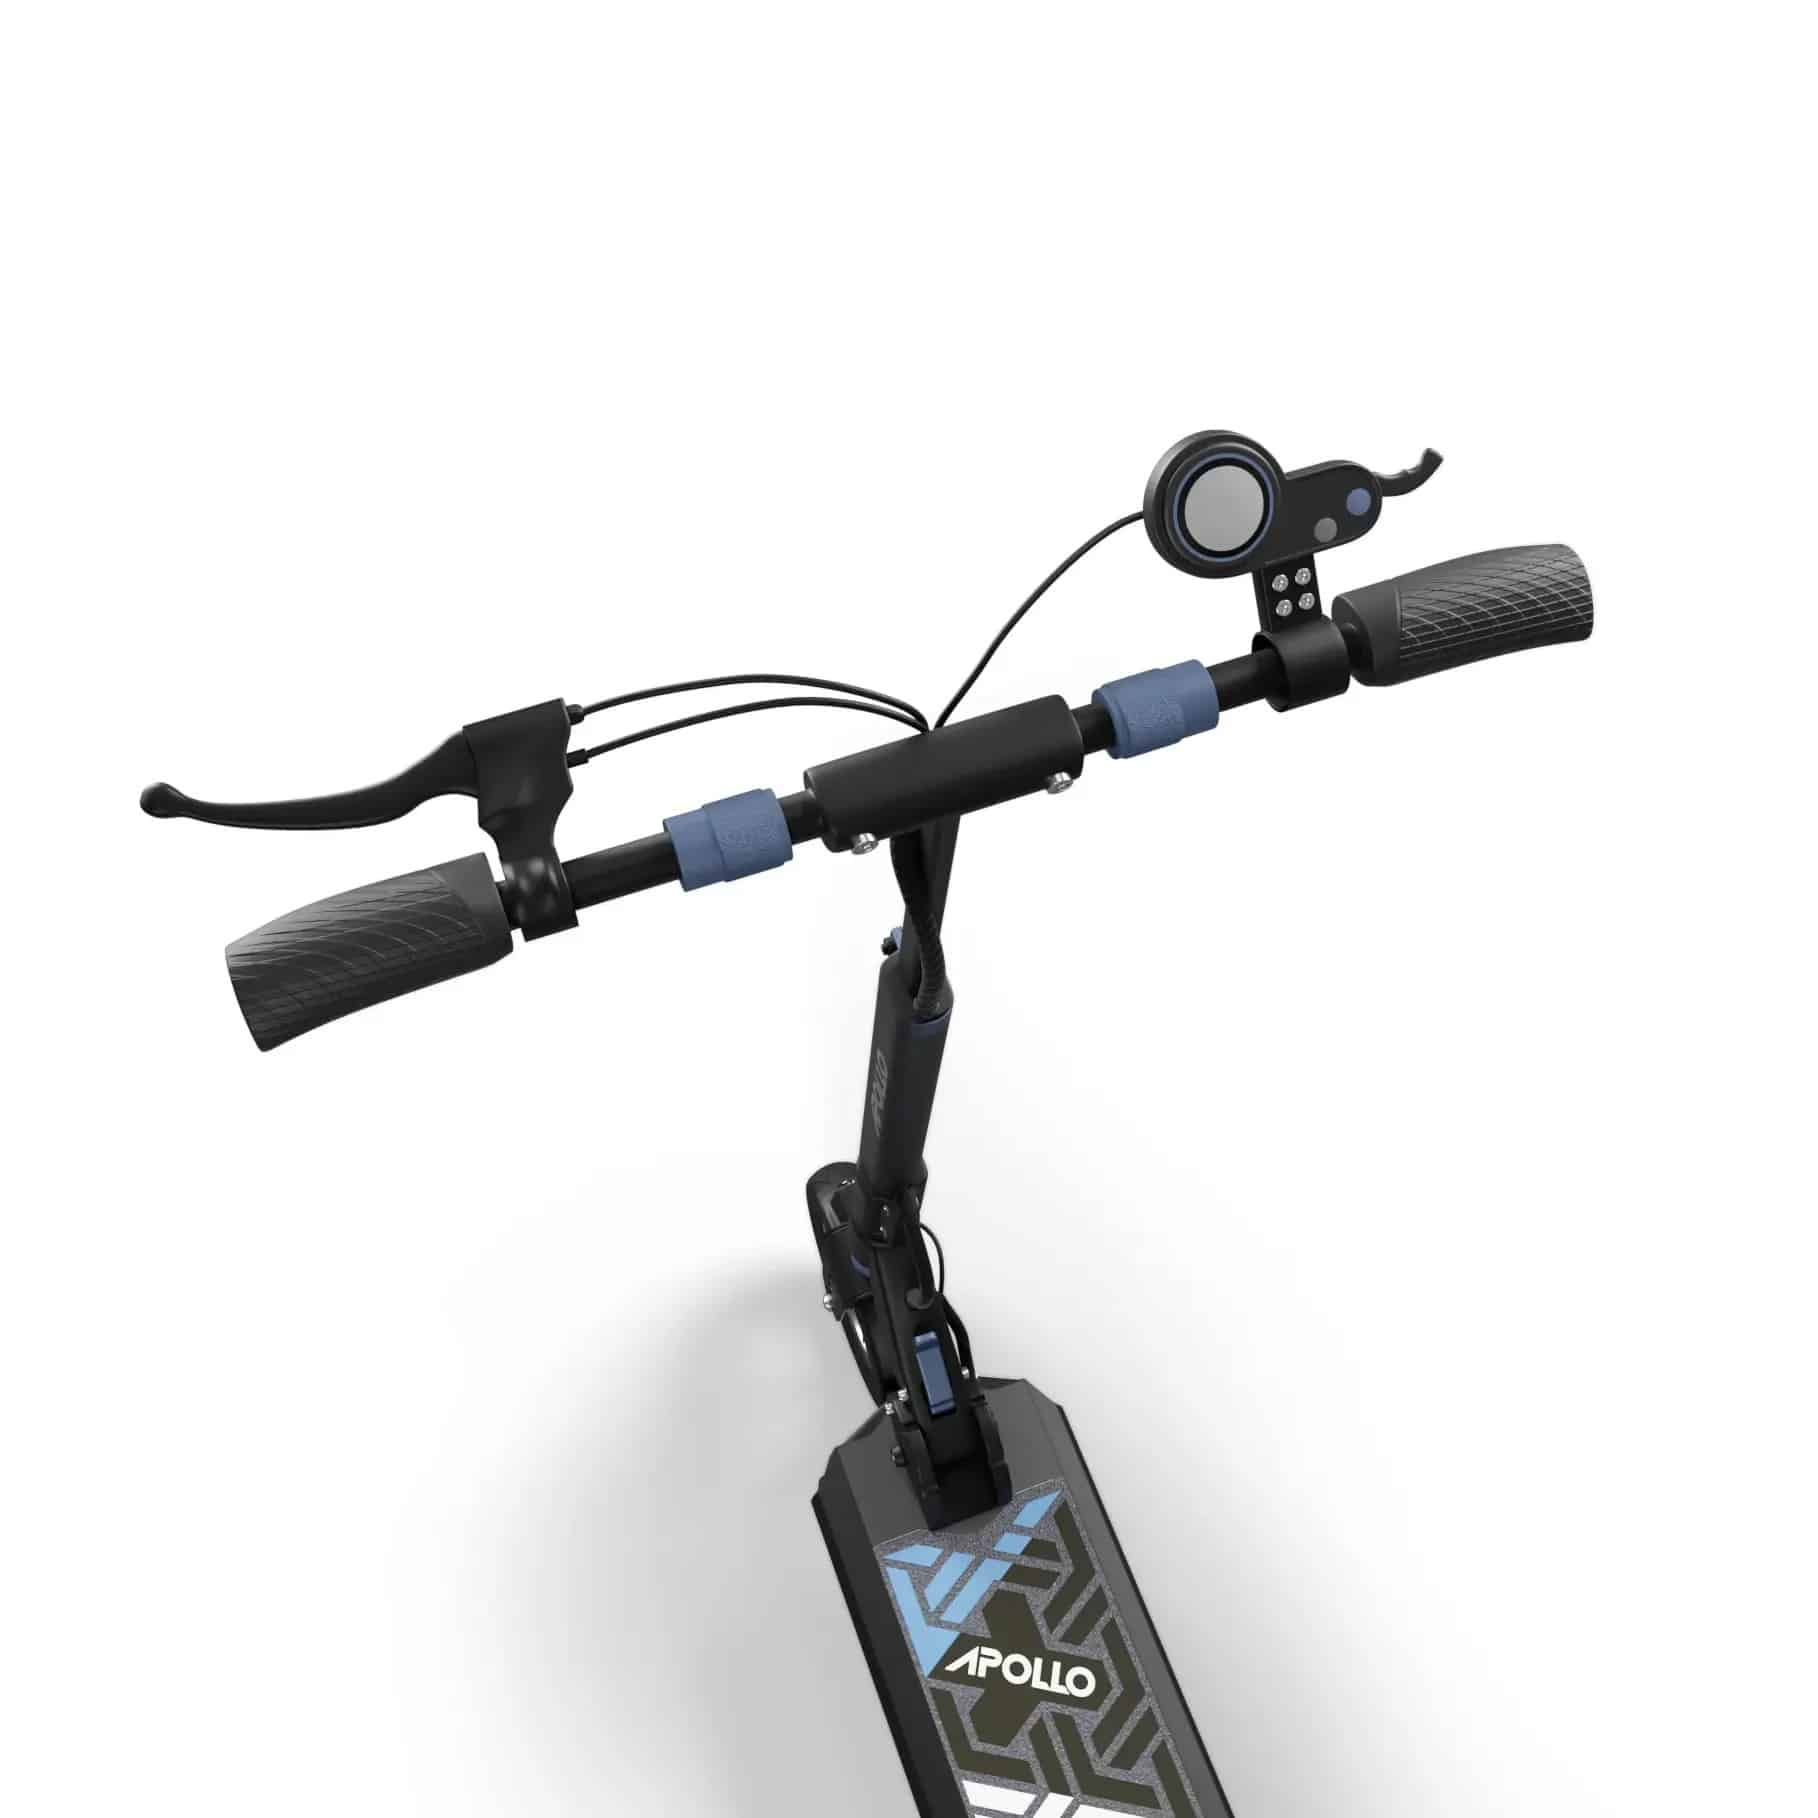 Who is the Apollo Light Electric Scooter Not For?